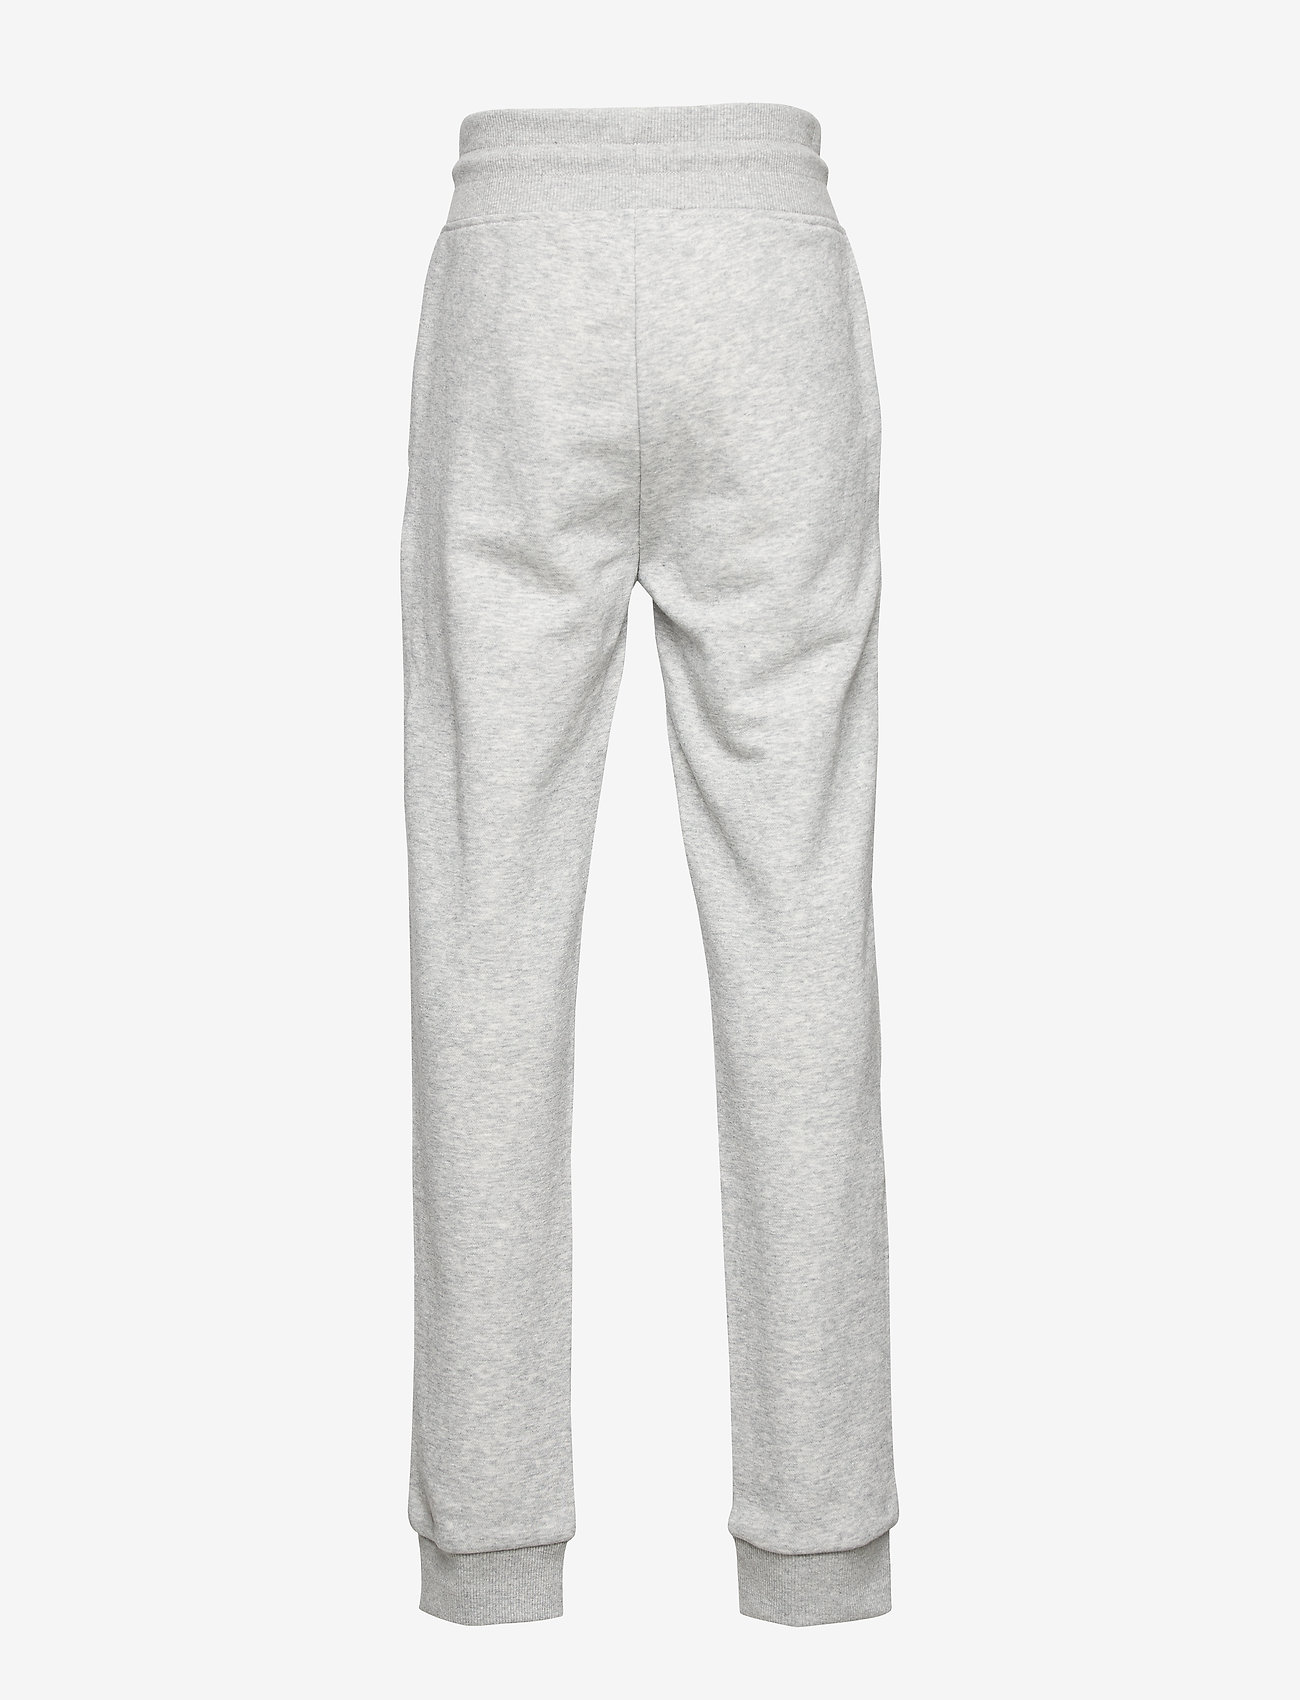 GANT - THE ORIGINAL SWEAT PANTS - jogginghosen - light grey melange - 1